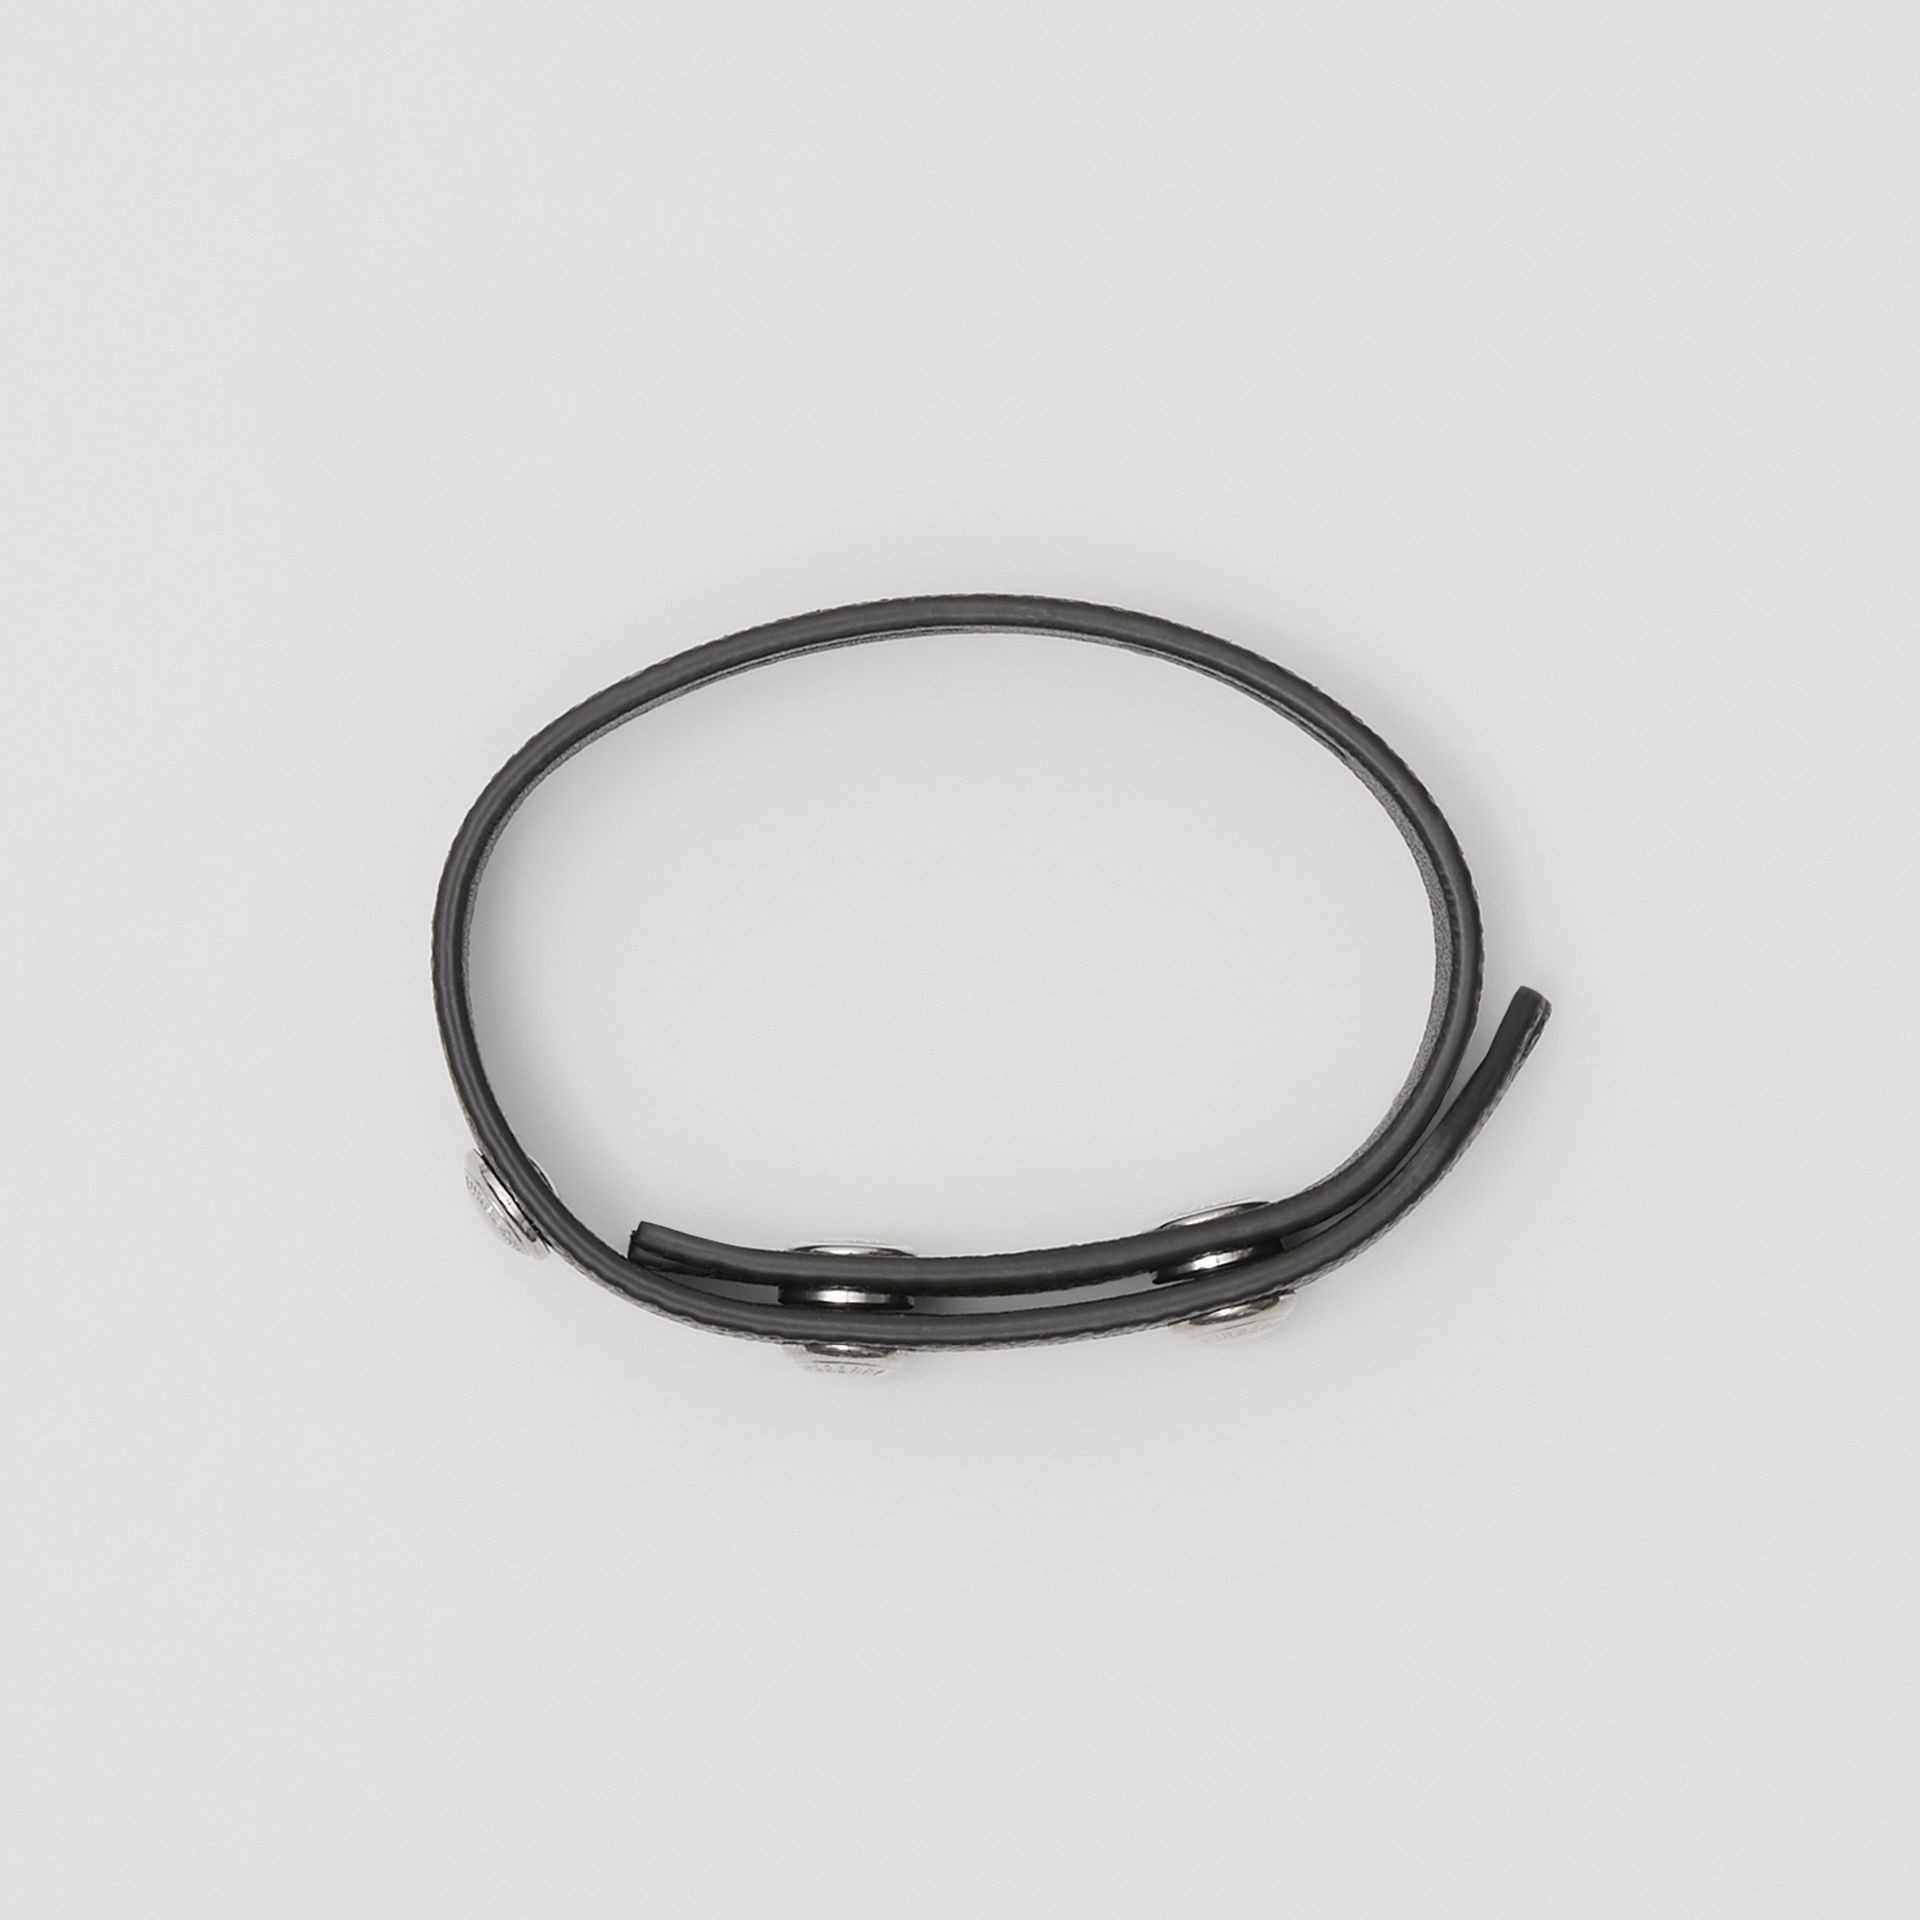 Bracelet en cuir grainé à triple pression (Noir) - Homme | Burberry - photo de la galerie 2